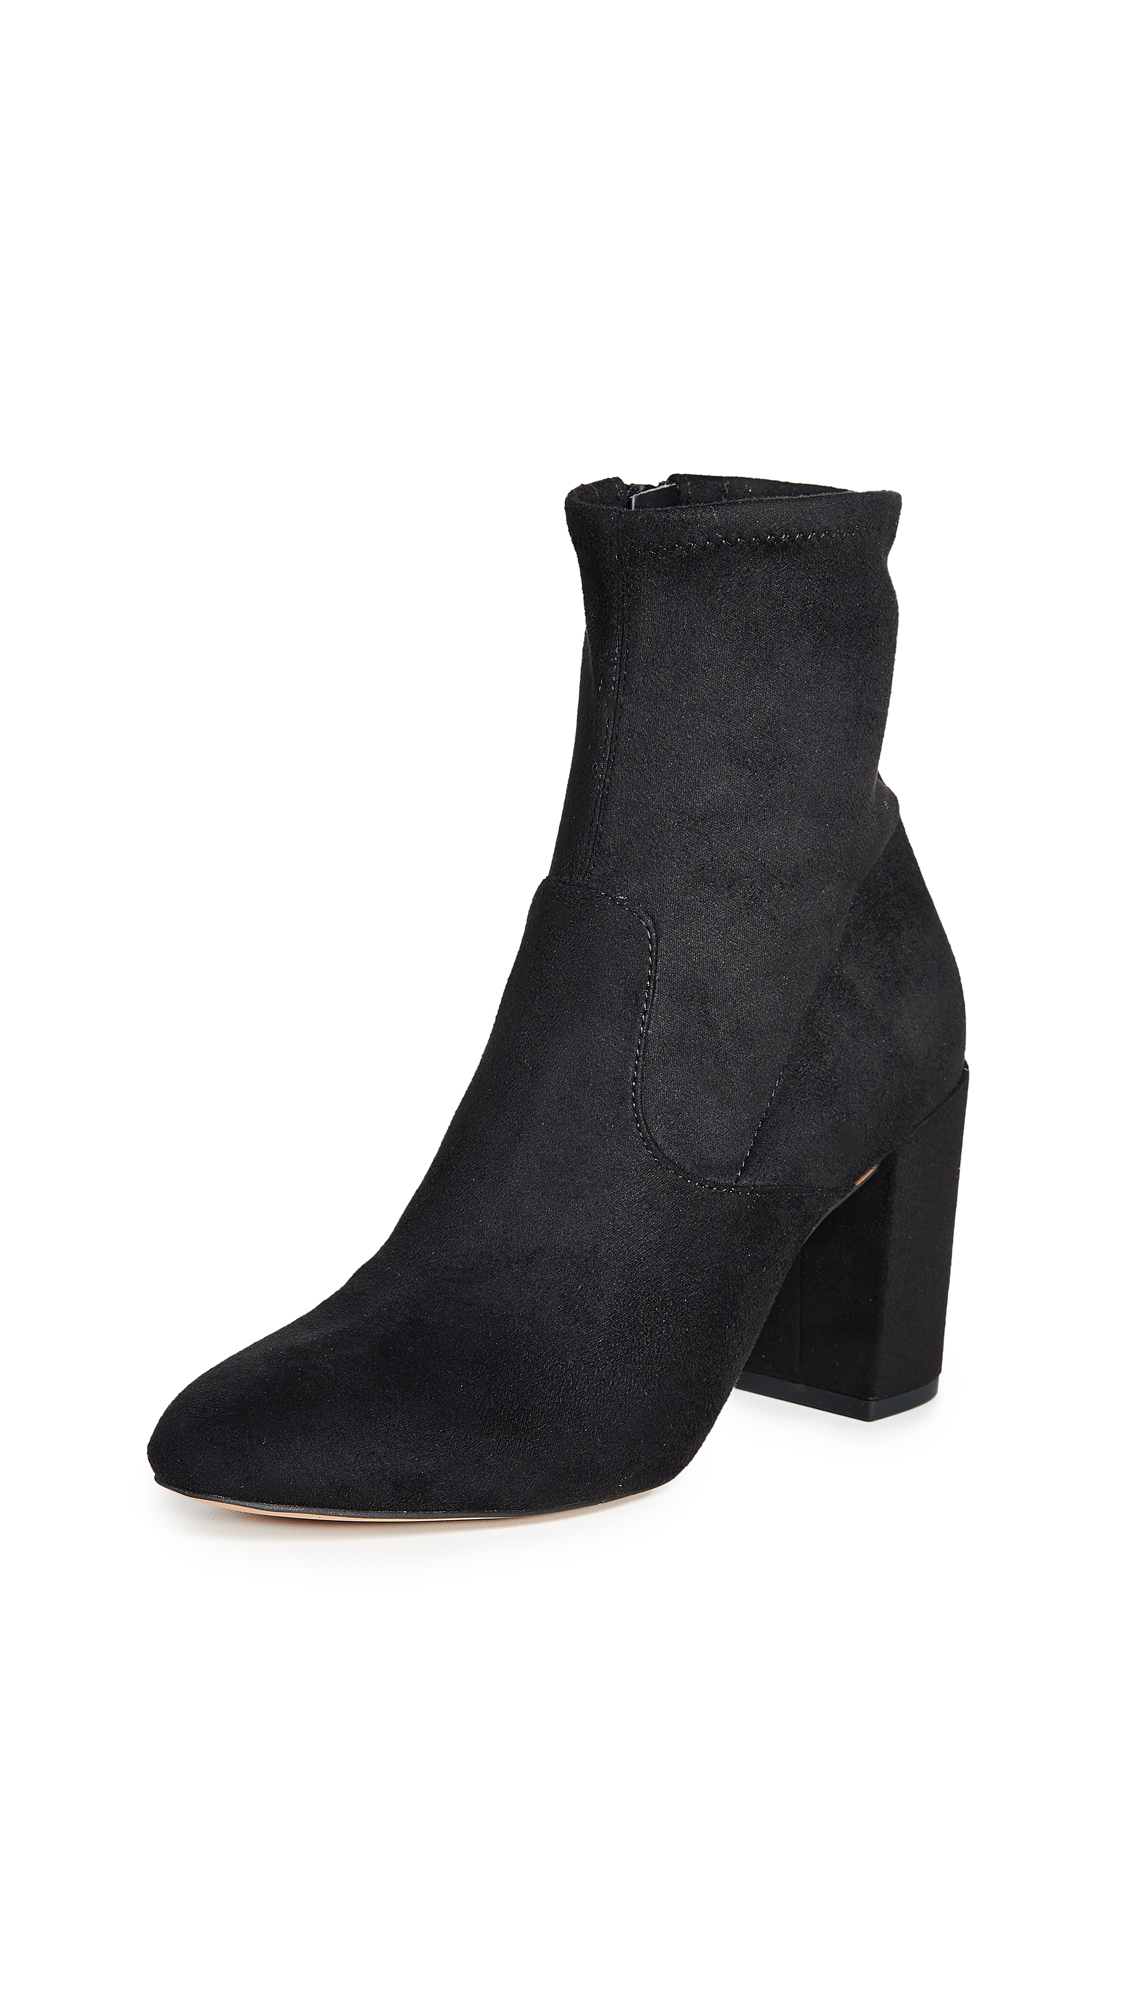 Rebecca Minkoff Gianella Block Heel Booties - Black